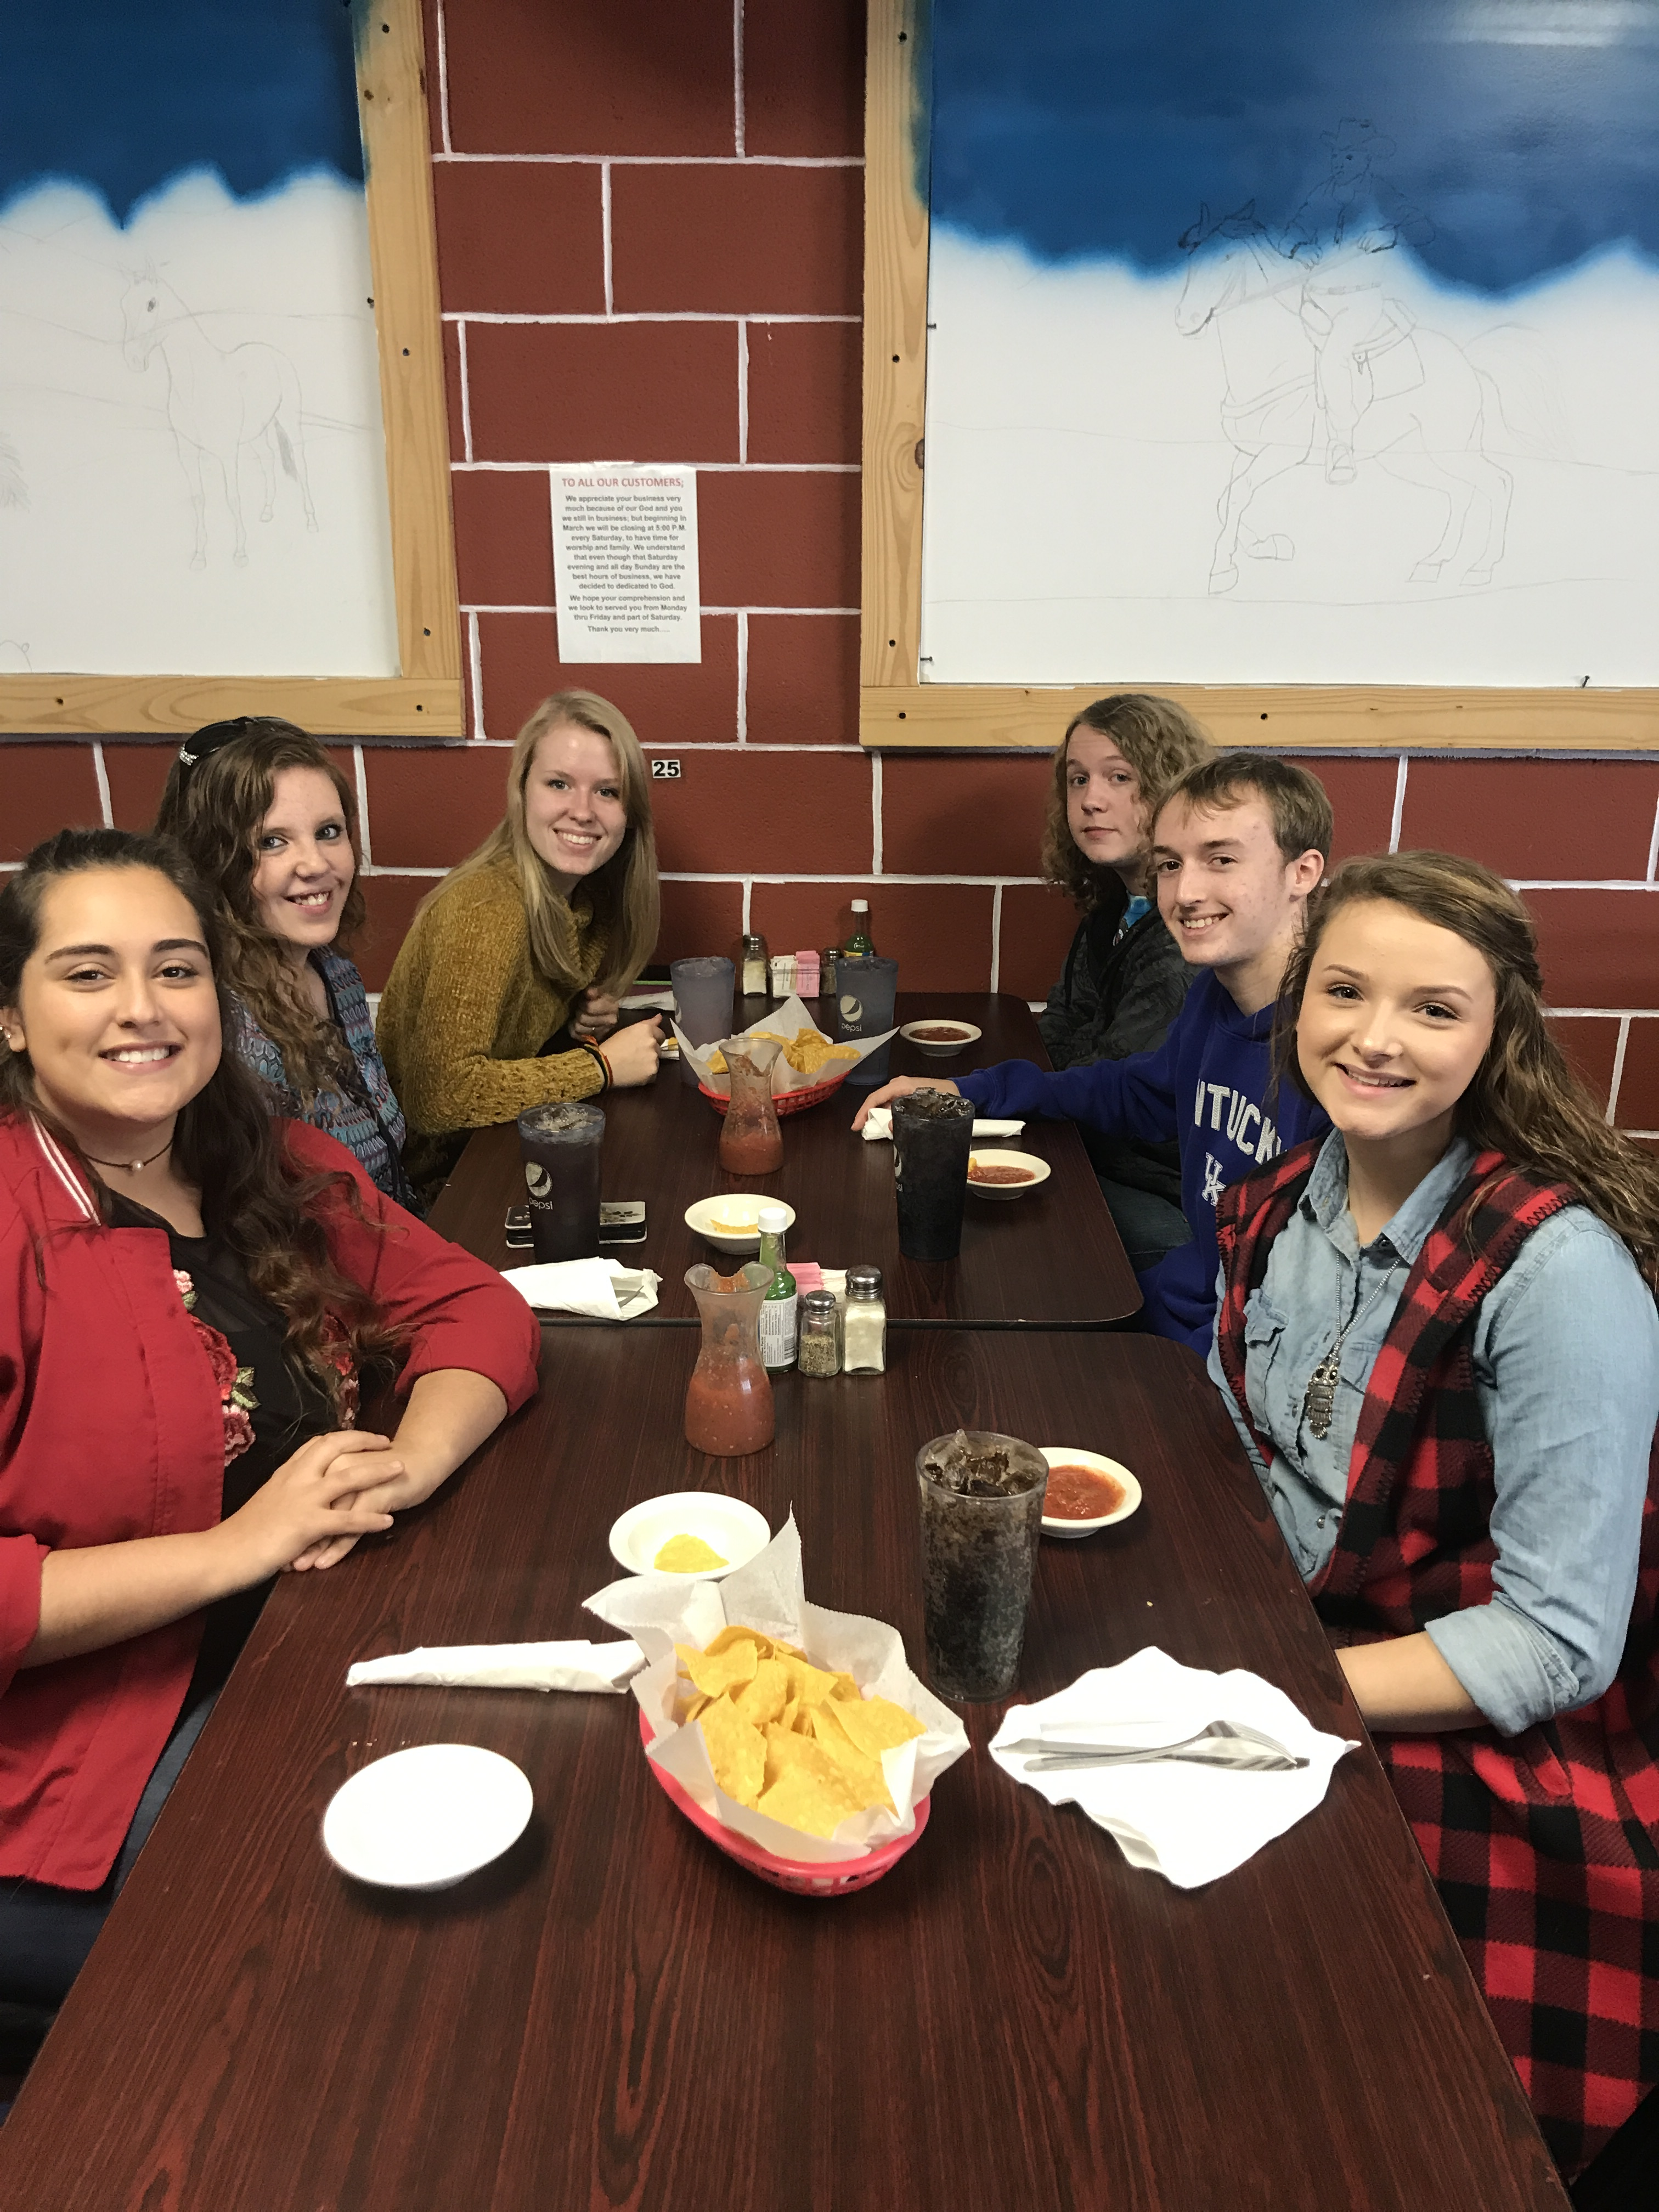 A College and Career Ready luncheon was held on November 21st to recognize students who have attained the level of college and career readiness as reflected in their ACT scores, Compass scores, or vocational studies exams.